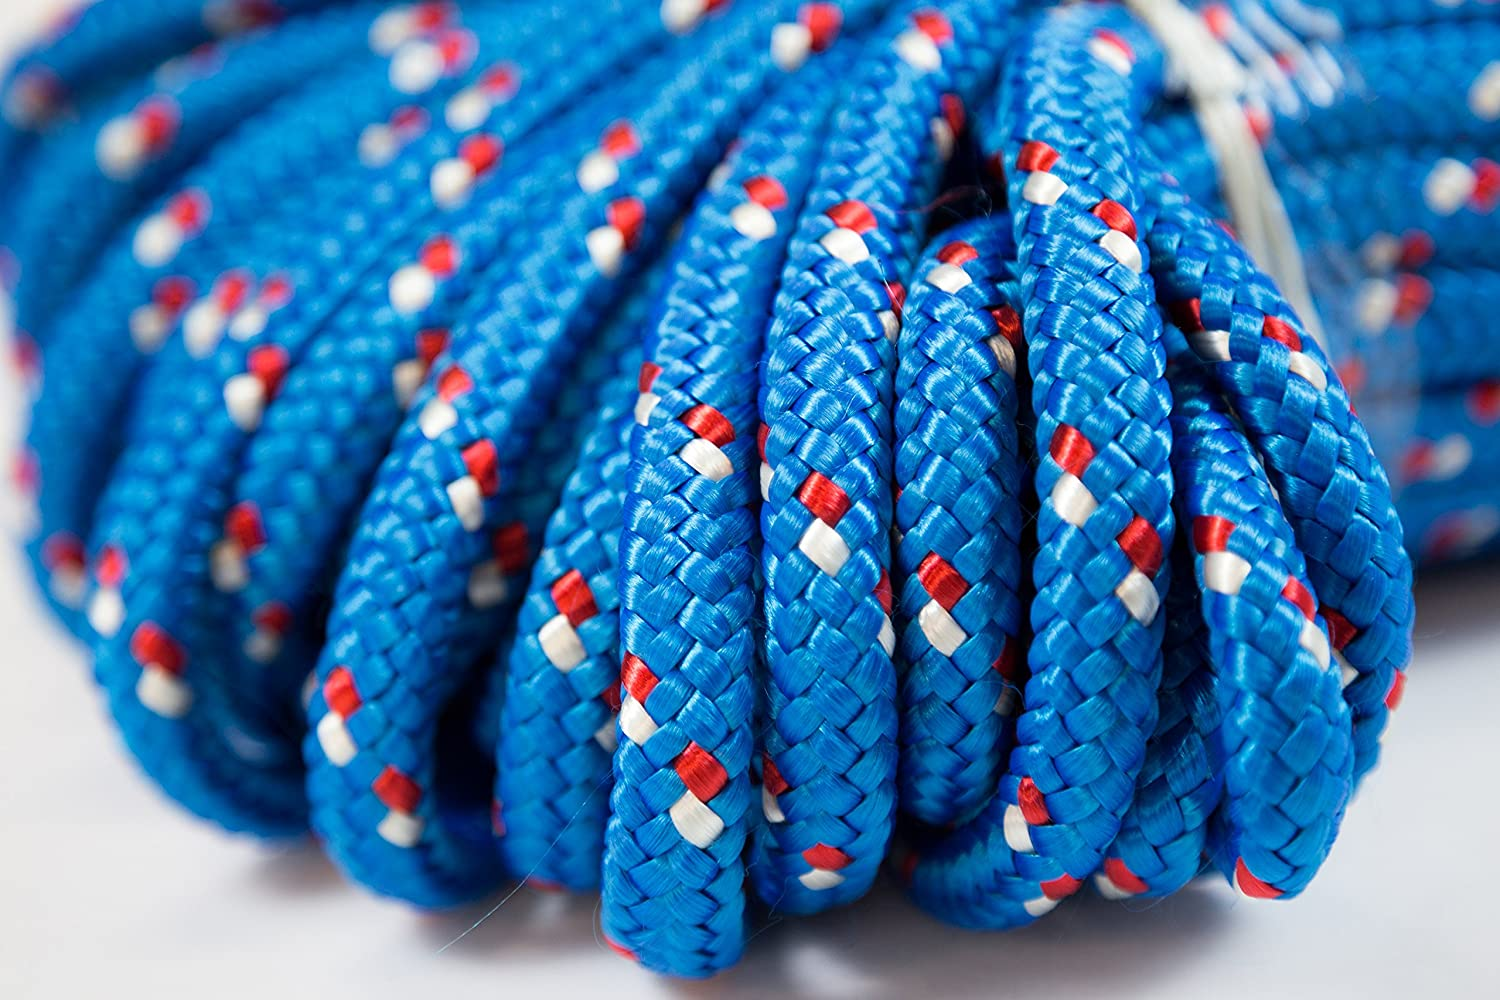 Amazon.com : Itacorda Eco-Friendly - Double Braided Rope - 1/2 inches - 150 feet - Blue - Outdoor activities : Sports & Outdoors